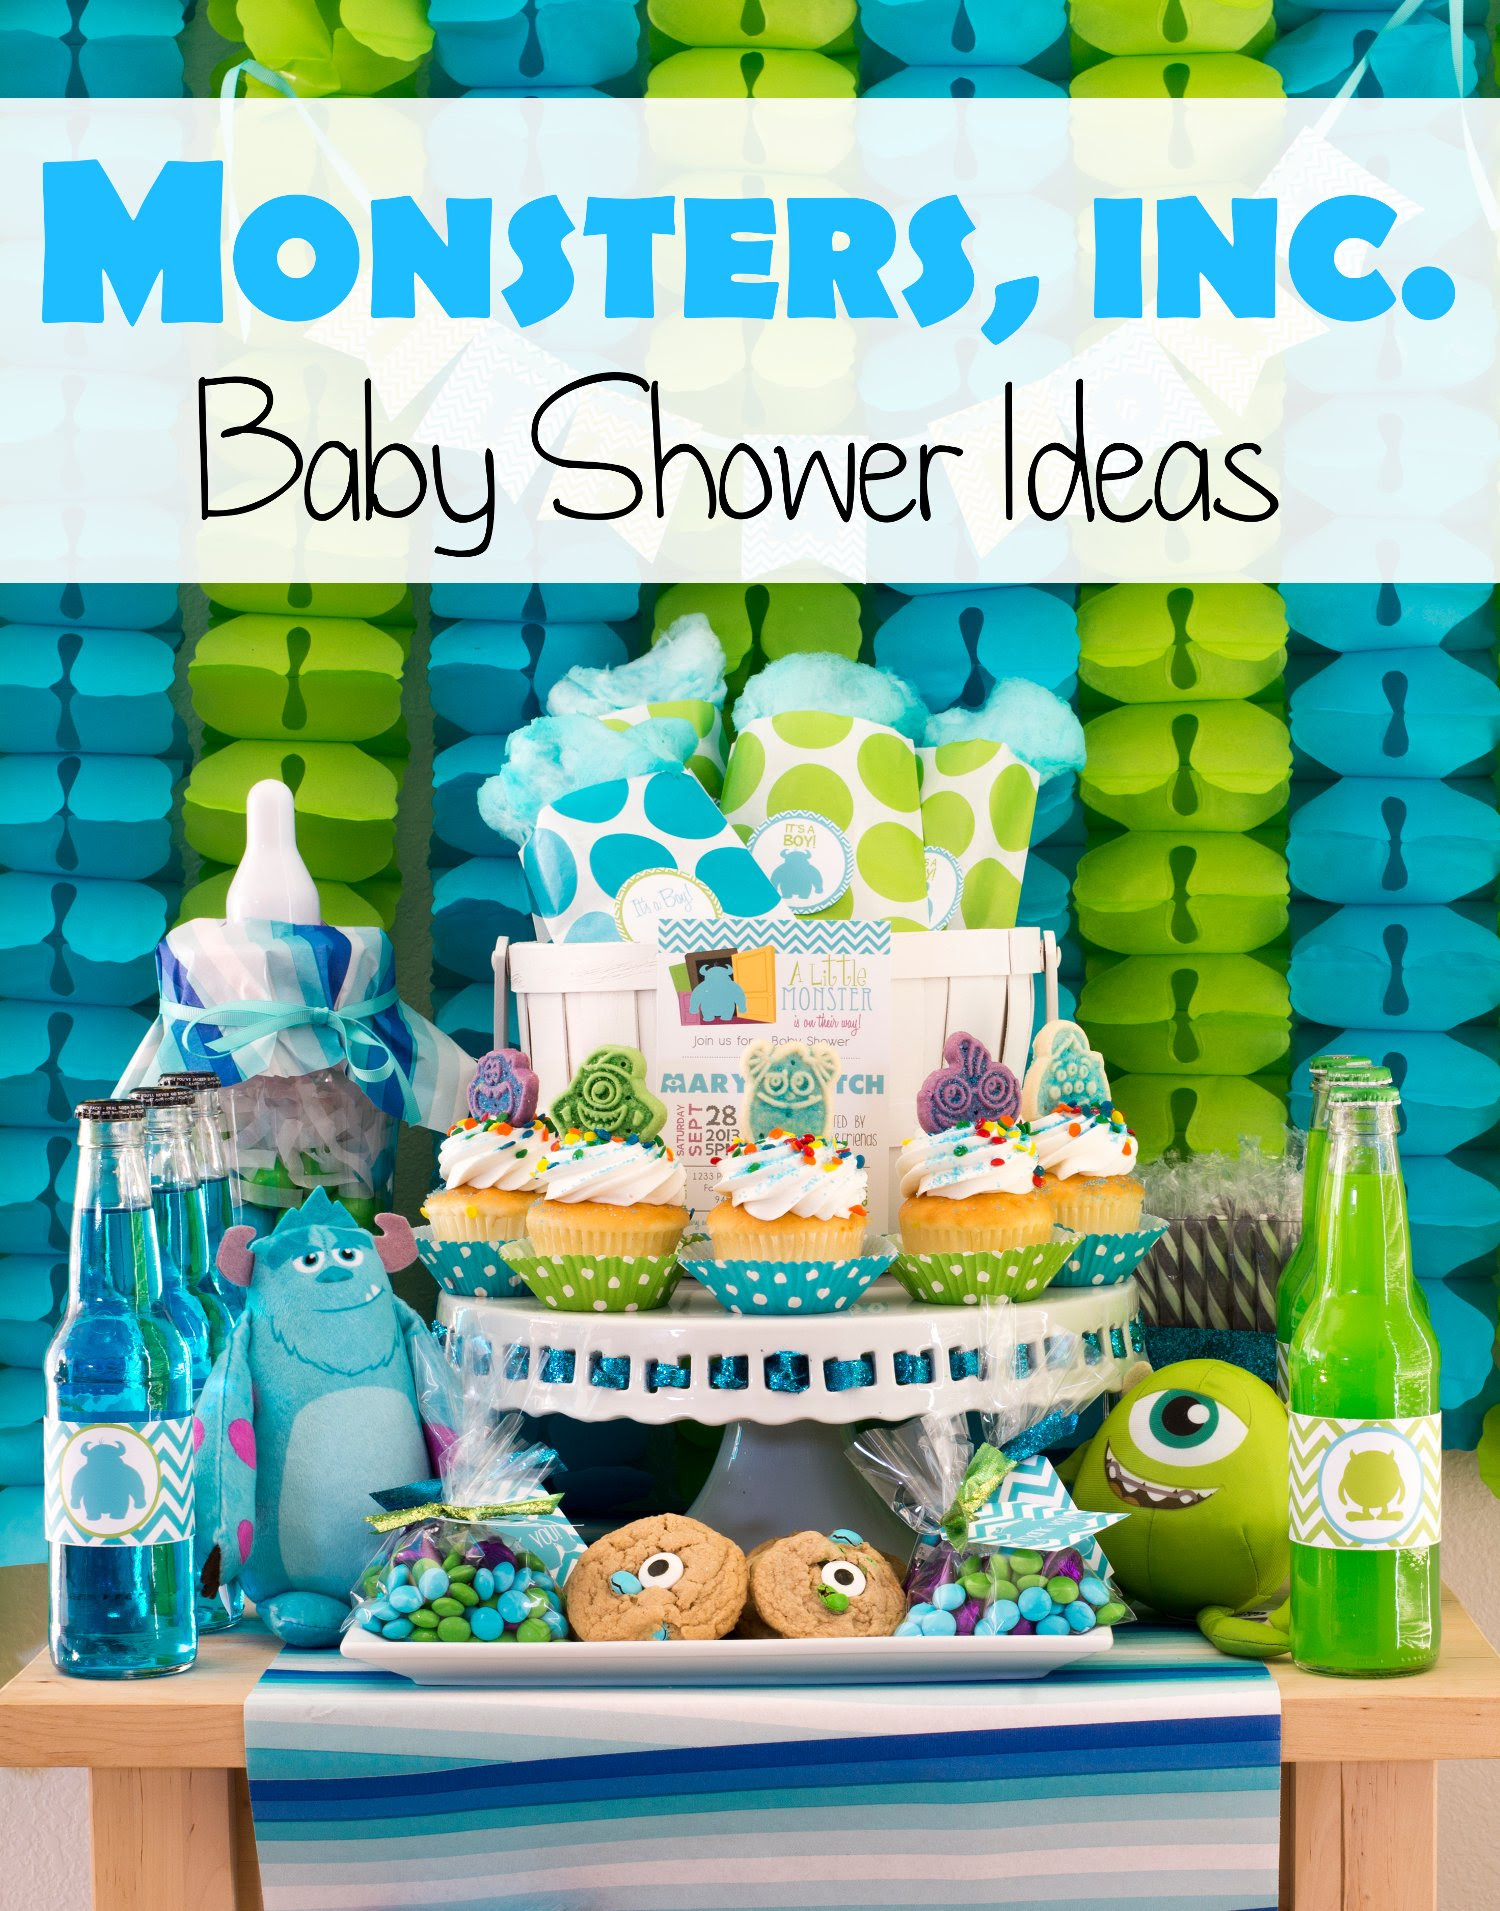 26 Images Monster Inc Baby Shower Ideas